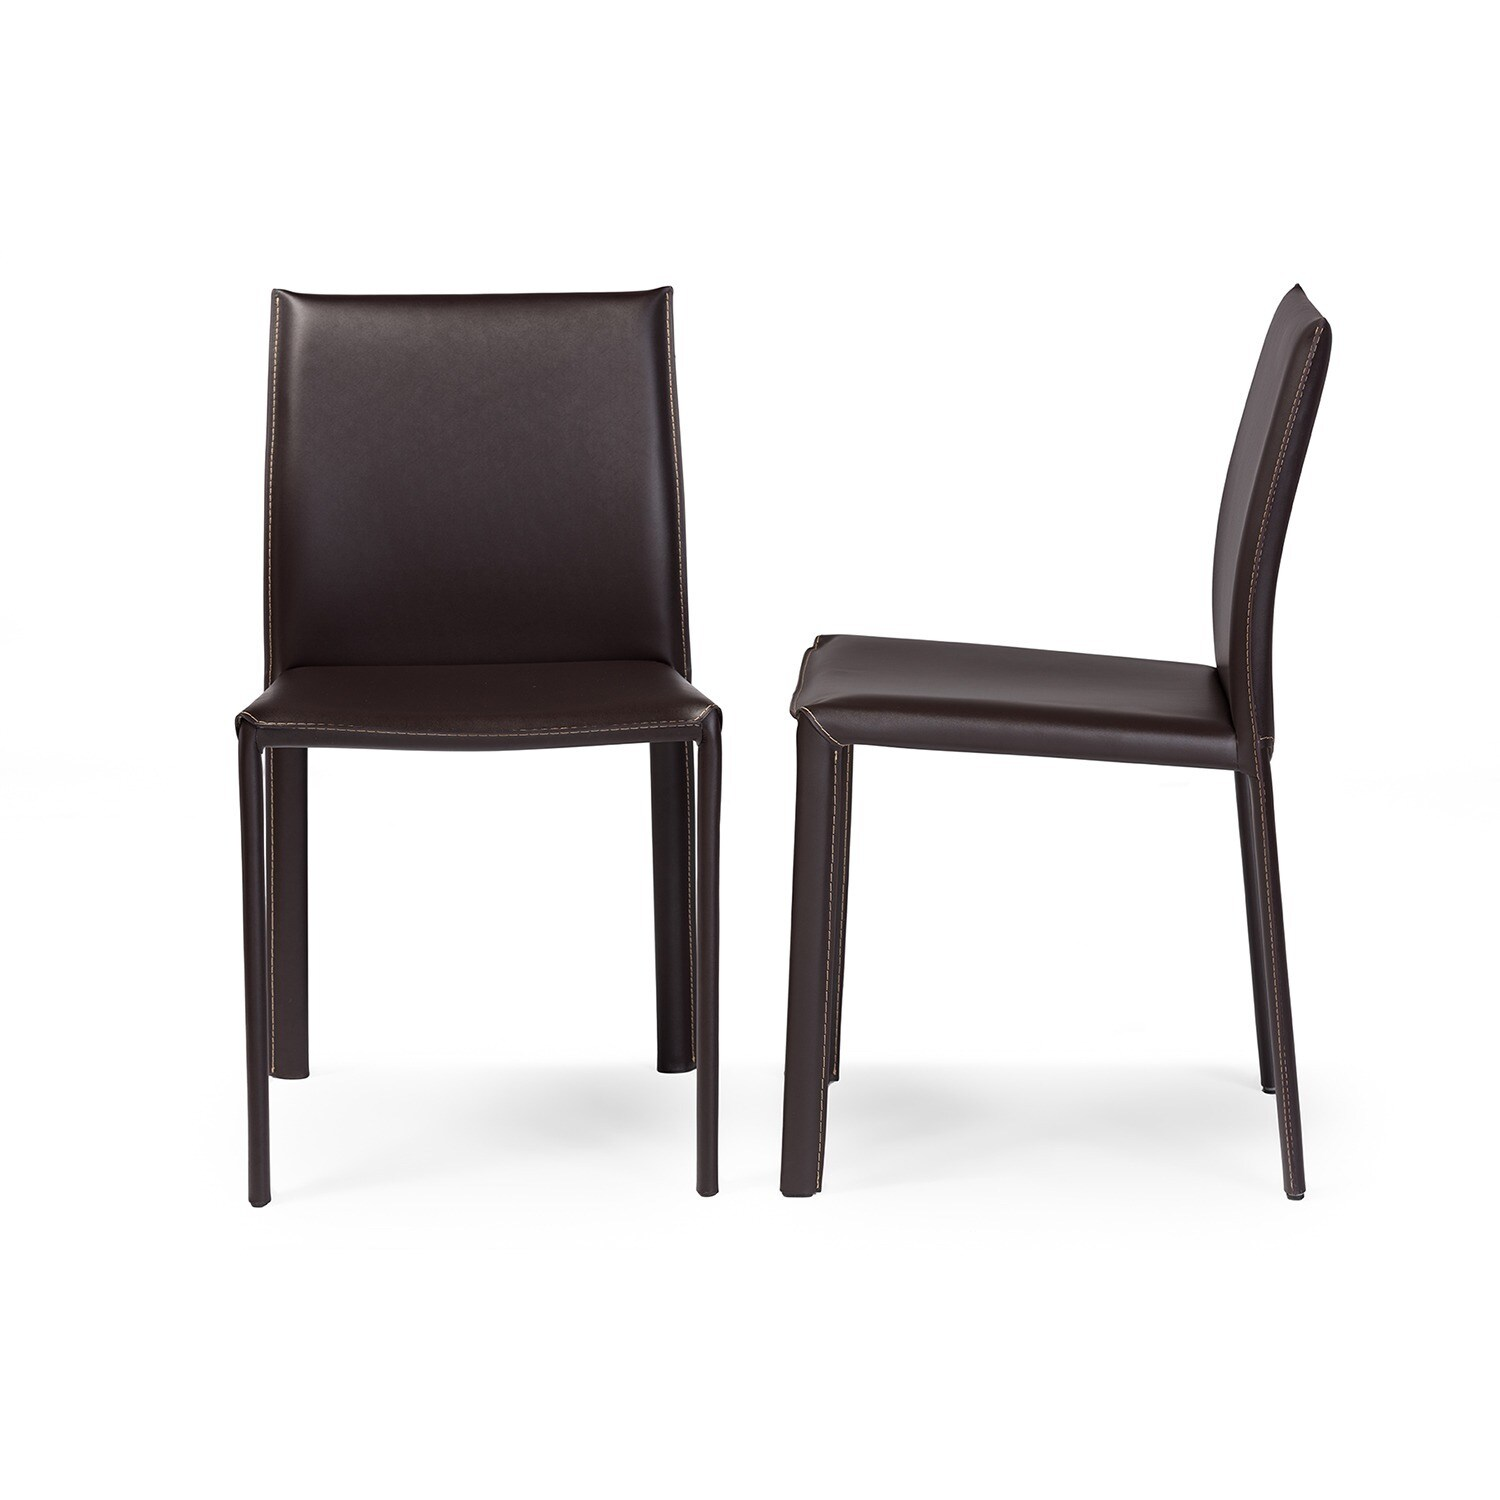 Modern Brown Faux Leather Dining Chair 2 Piece Set By Baxton Studio